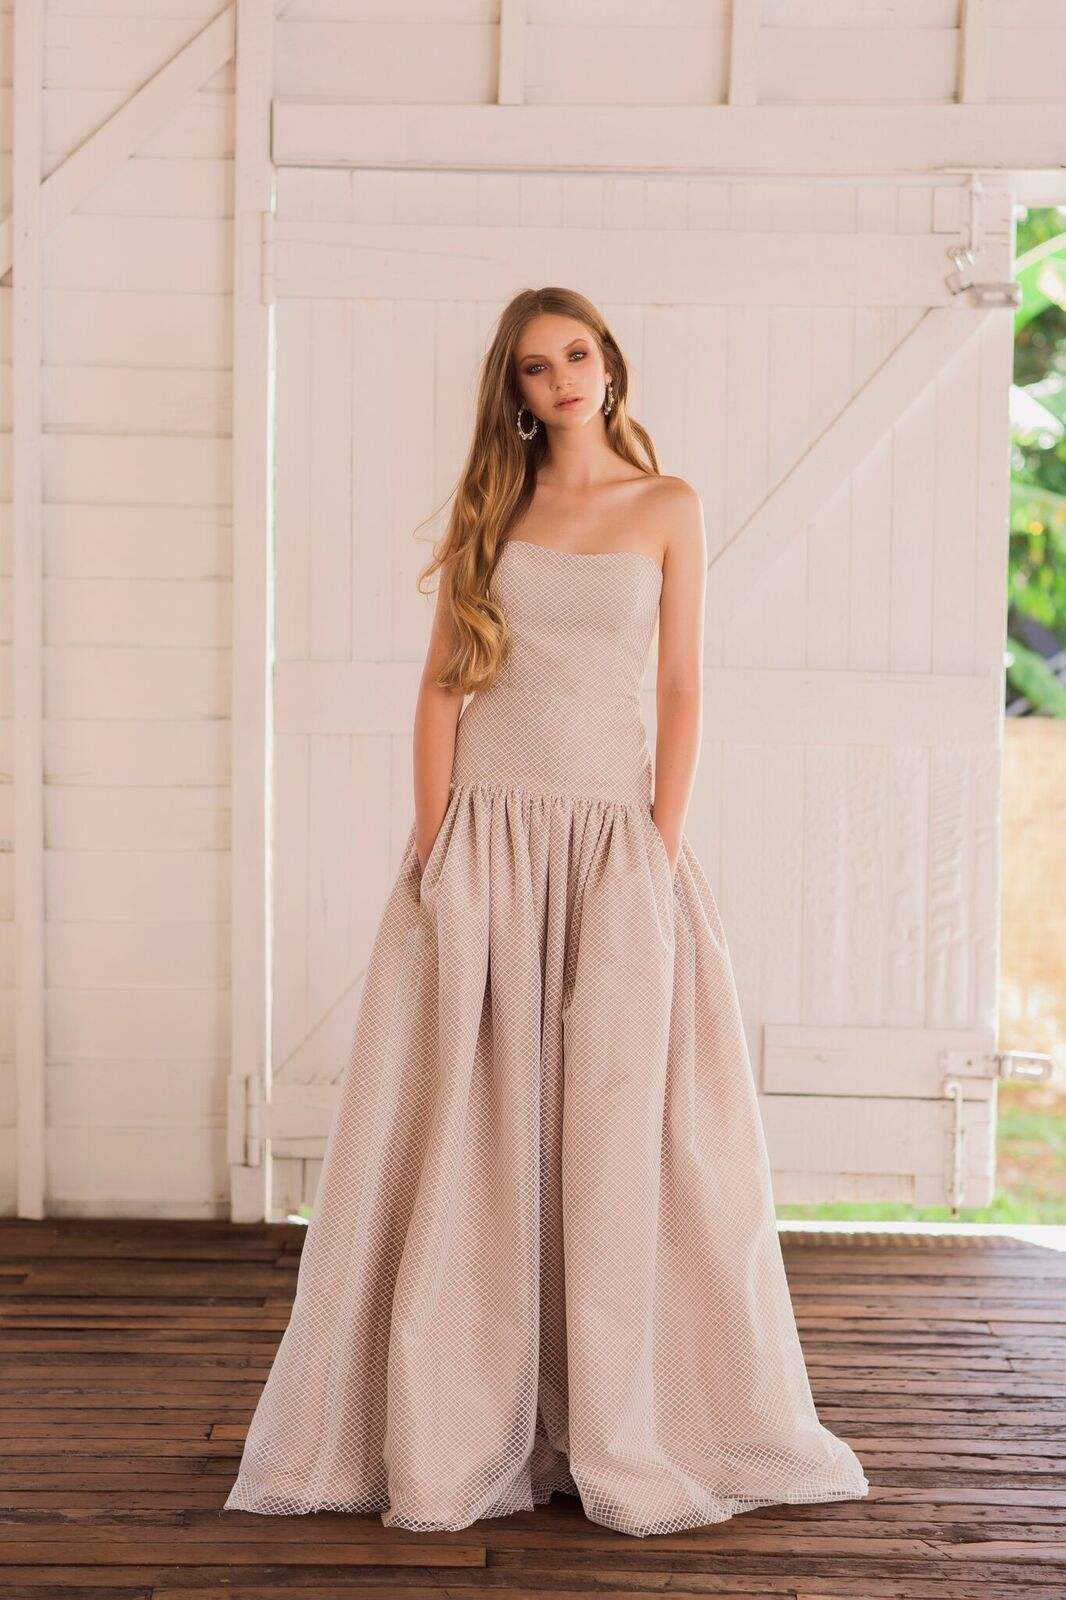 'Alegra' -s trapless drop-waist gown with diamond tulle over tea rose silk dupion and side pockets.